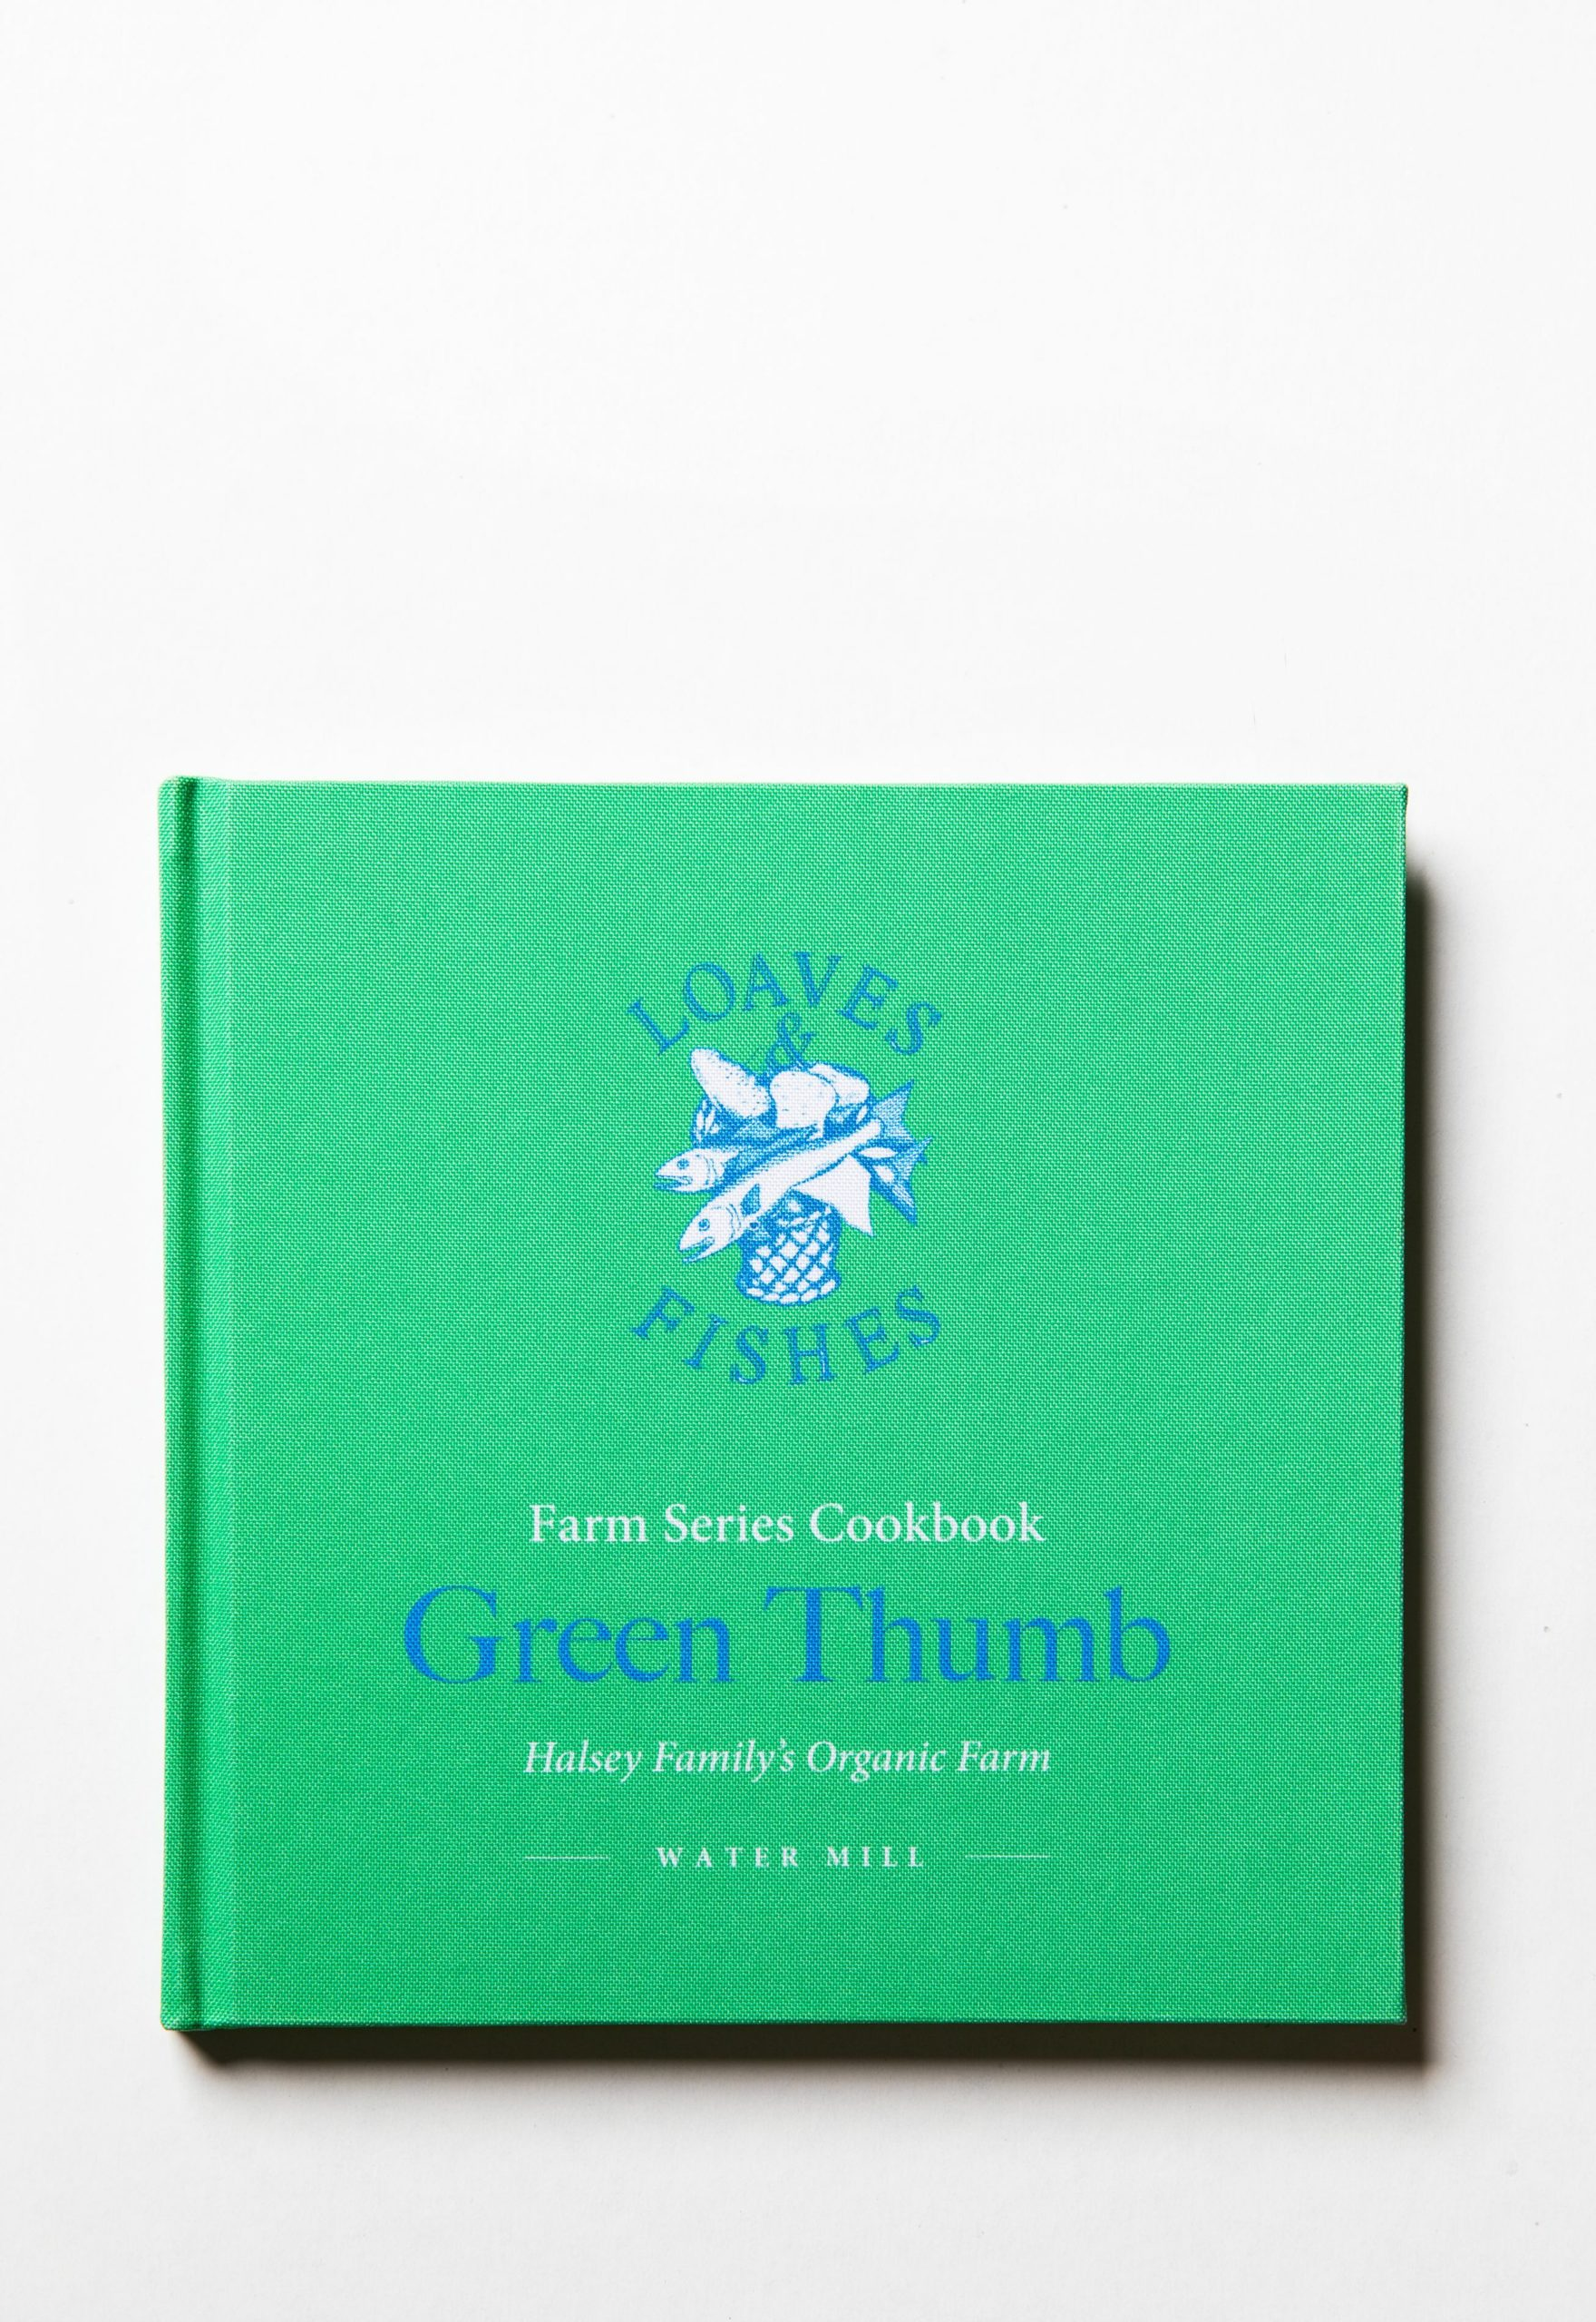 The Green Thumb cookbook.